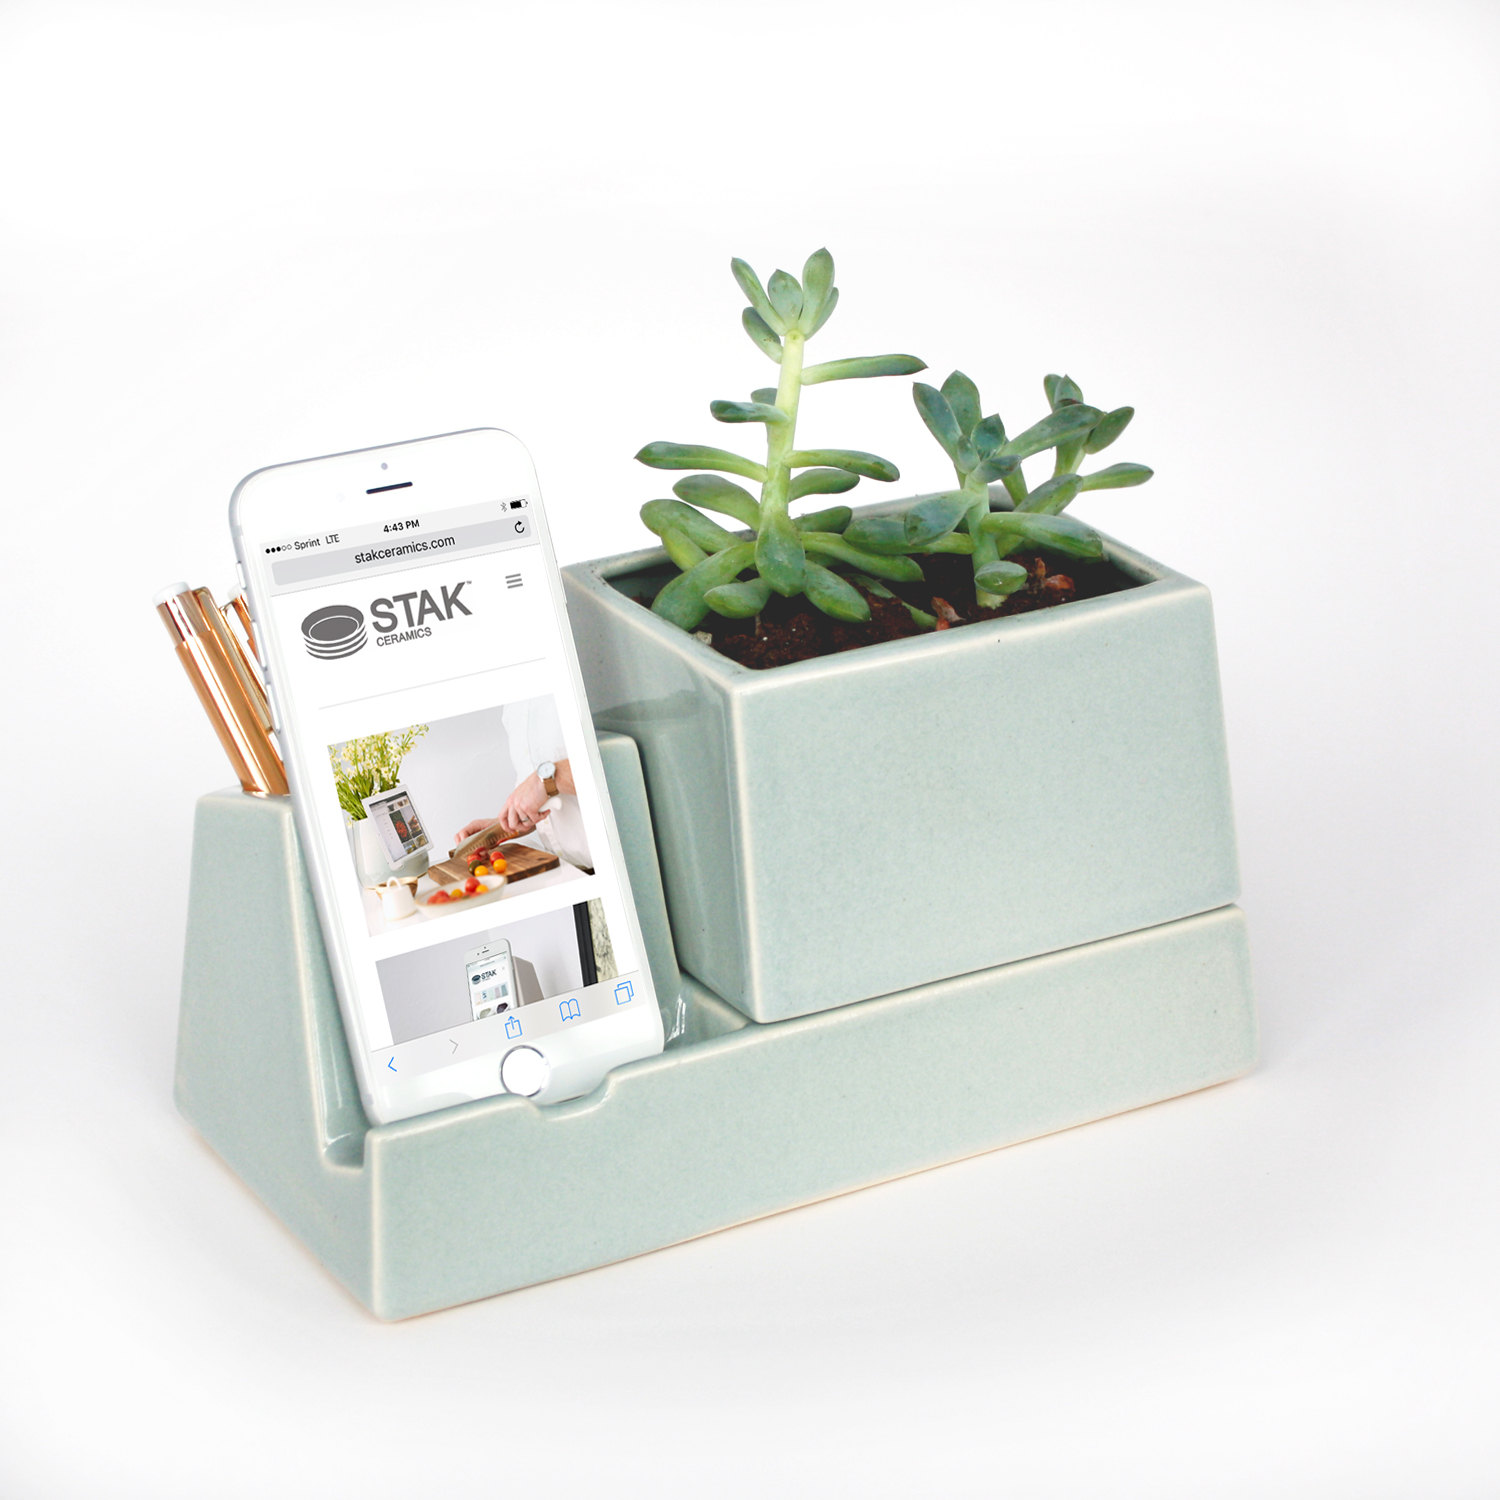 14 Ways to Display Succulents - Desk Planter Ipod Dock